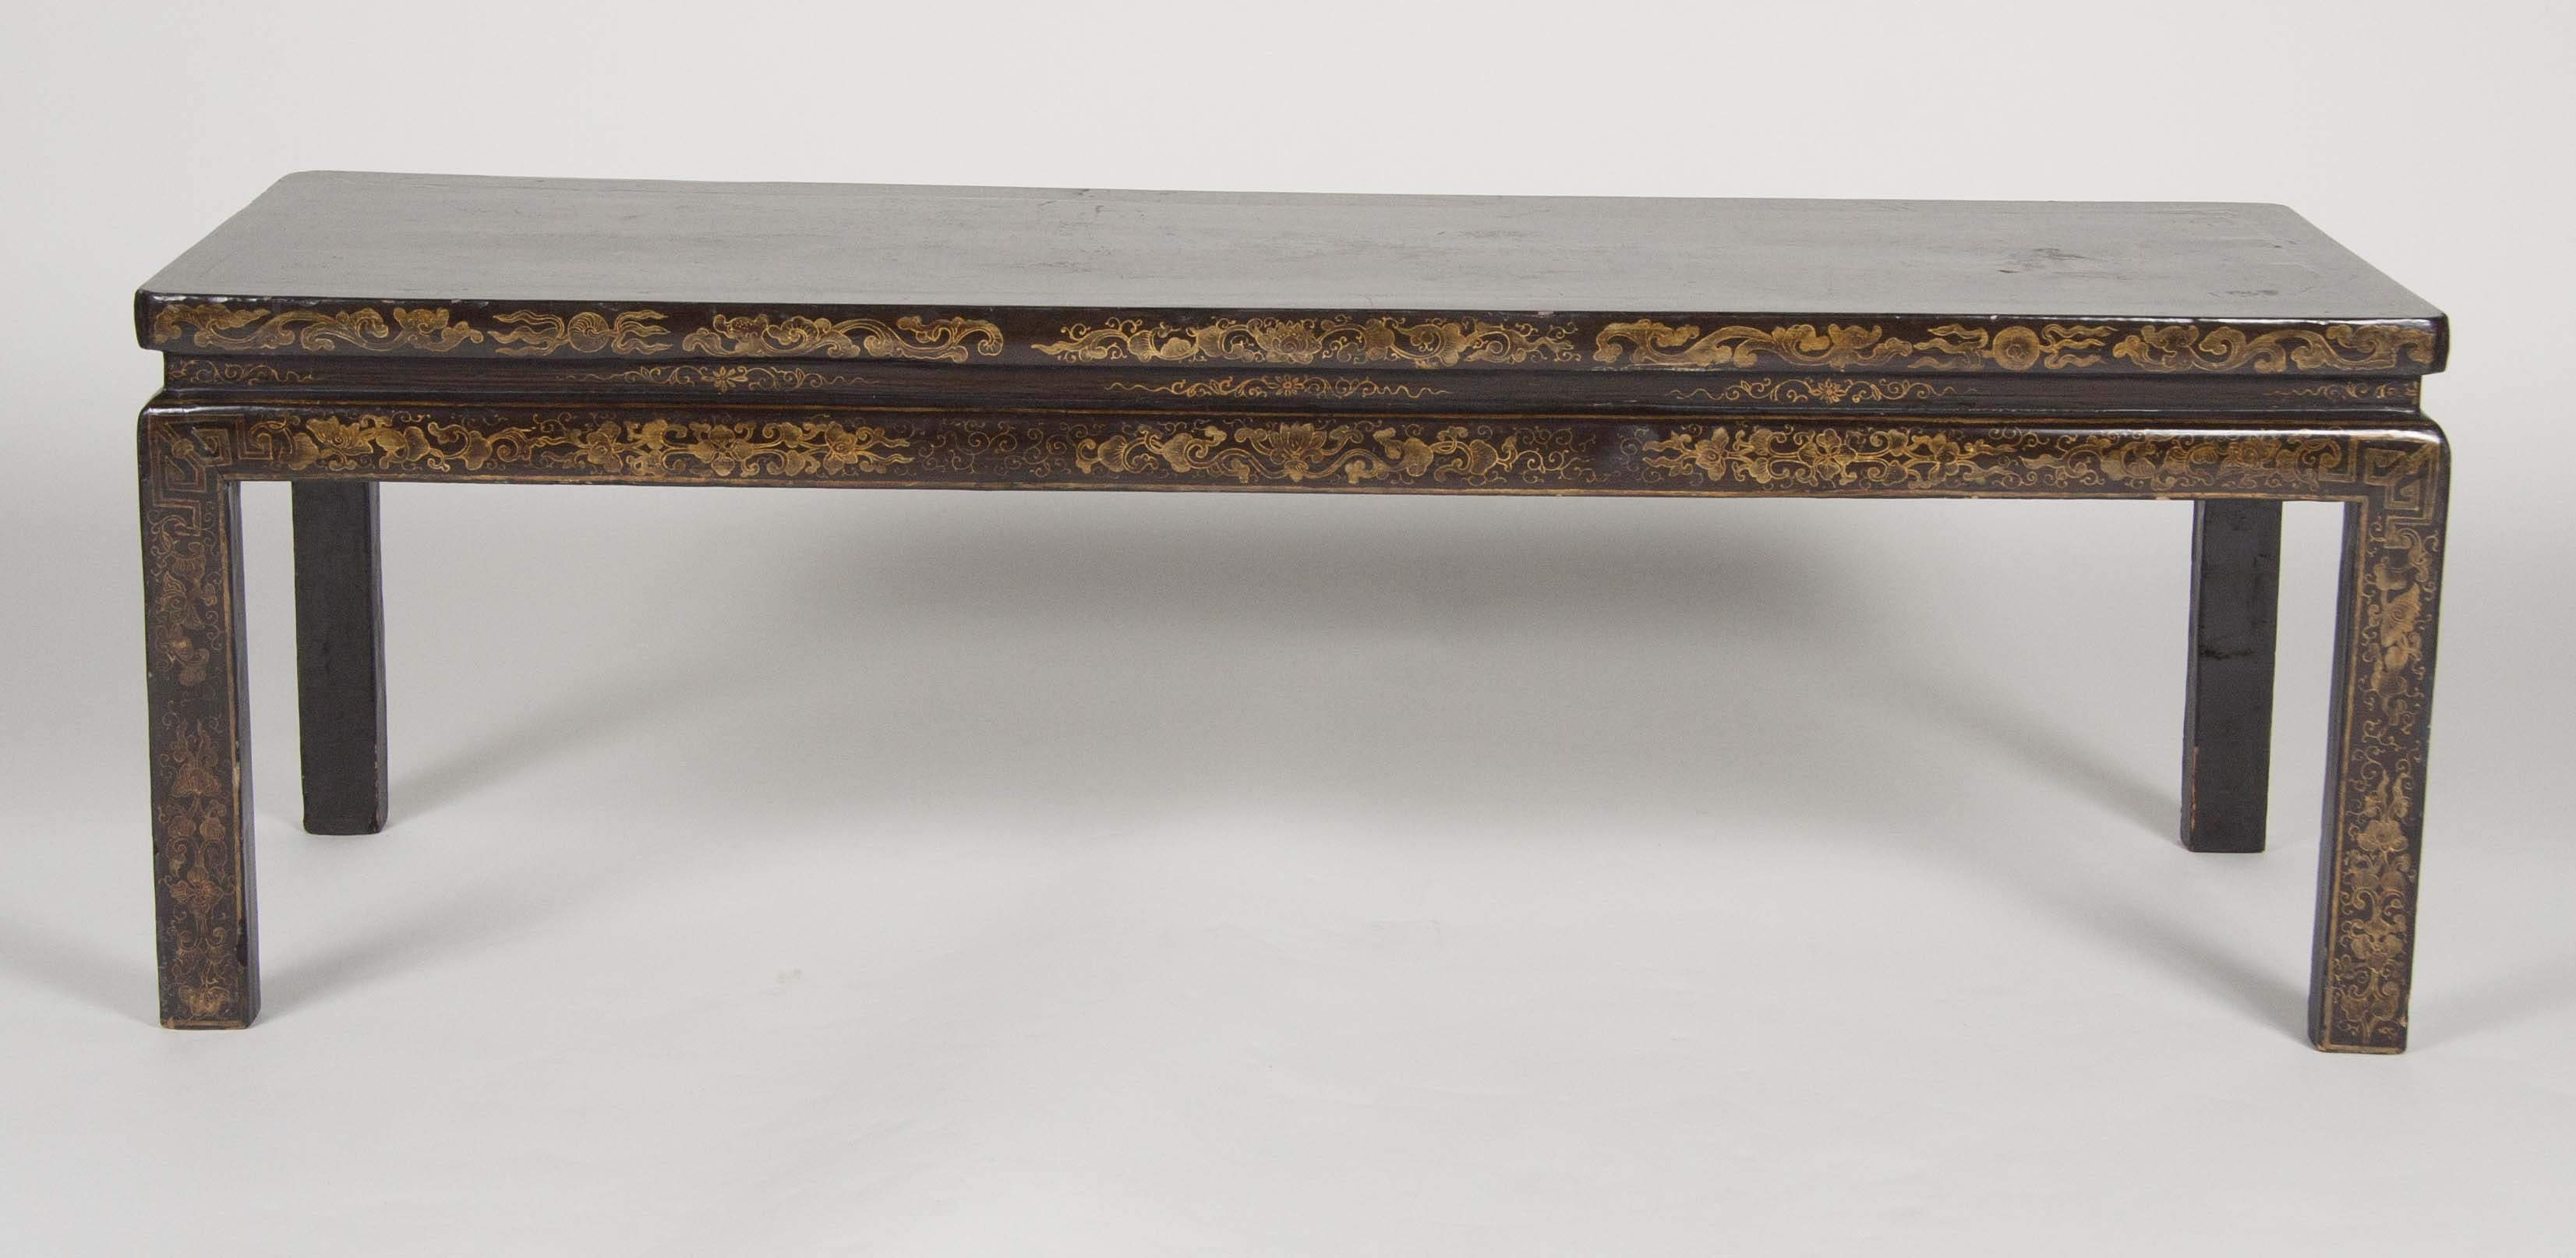 A Golden Brown Lacquered Chinoiserie Coffee Table – Avery & Dash